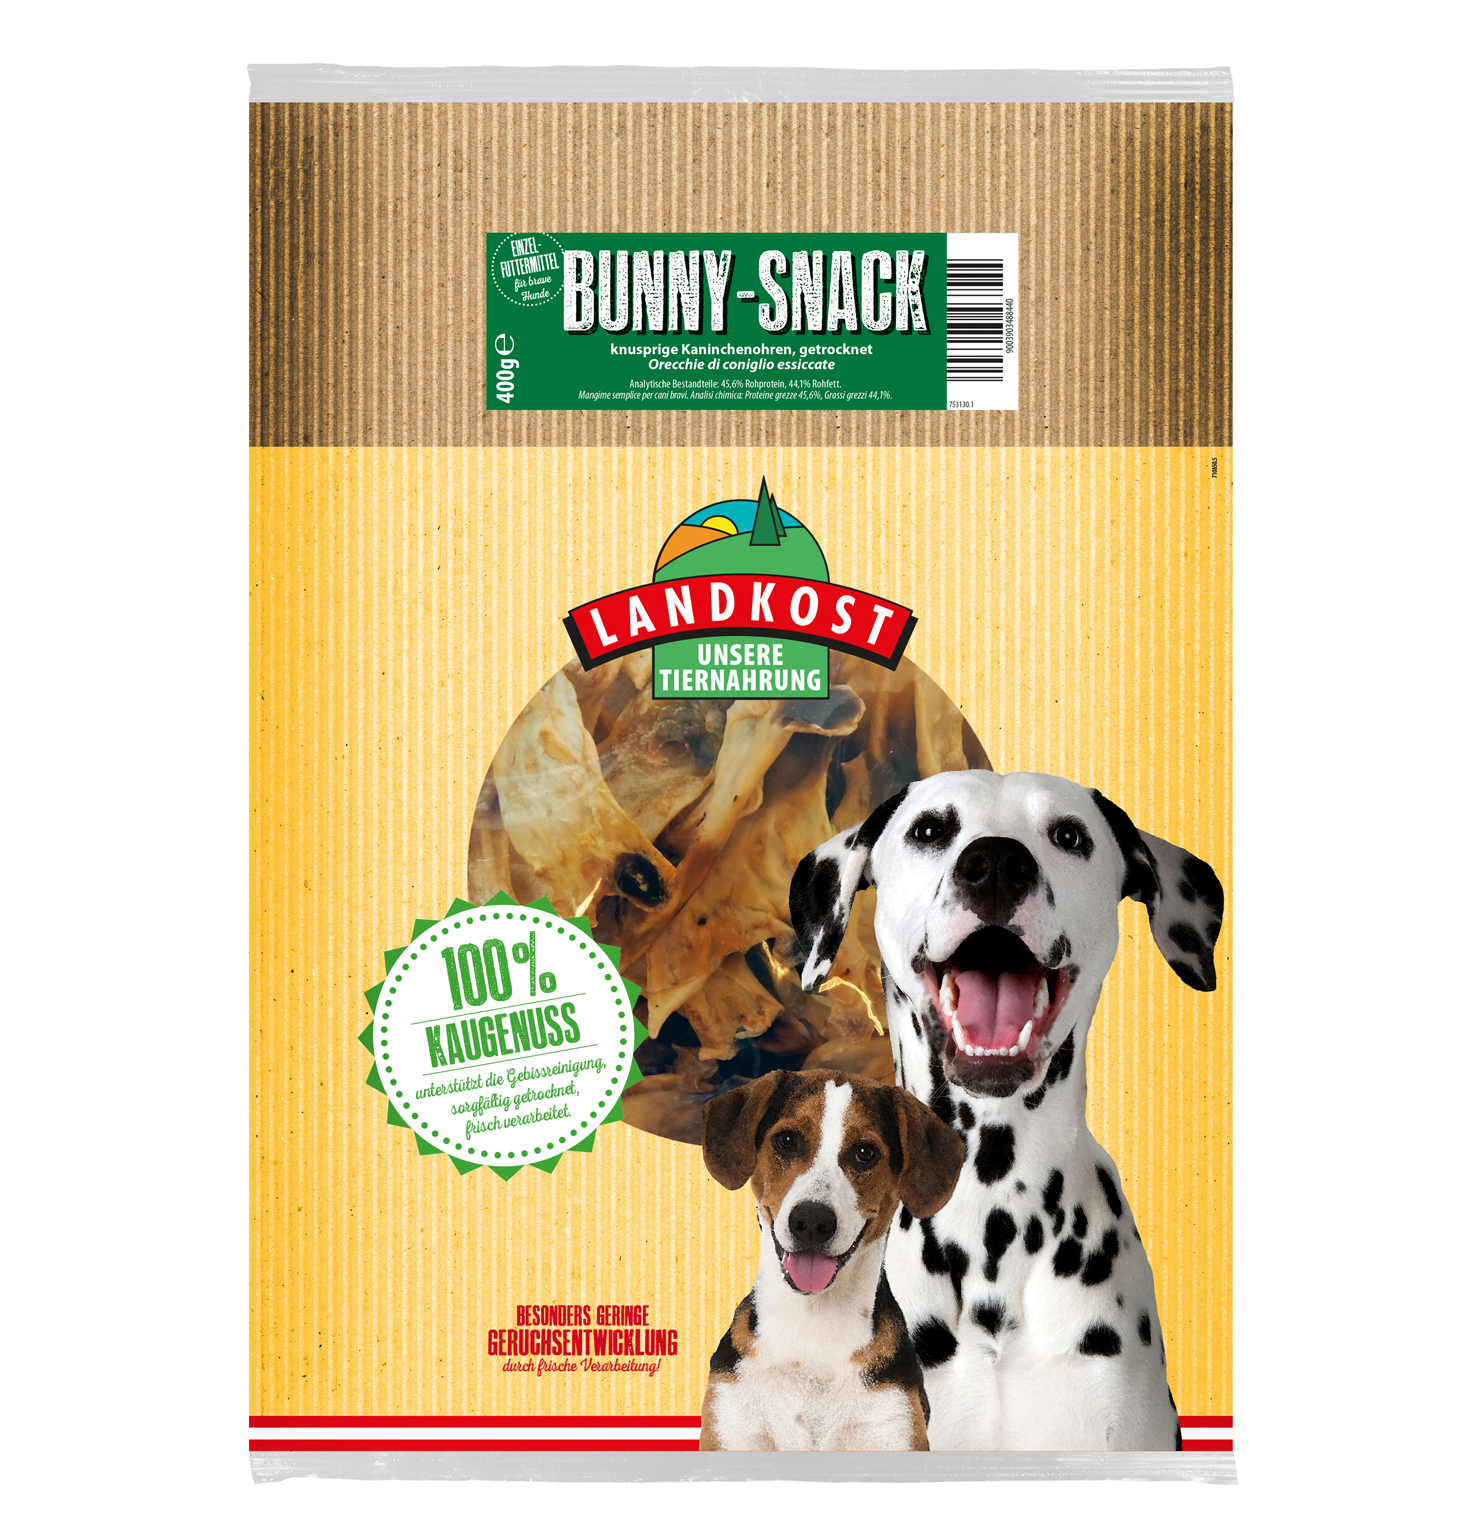 Bunny-Snack Grosspackung 400g